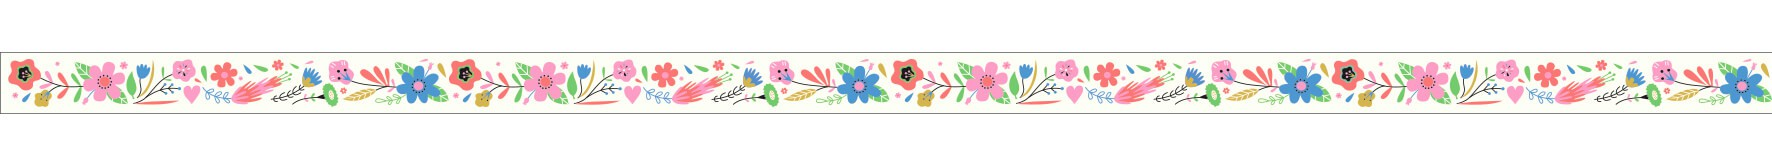 Cinta adhesiva de Flors - Lovely paper